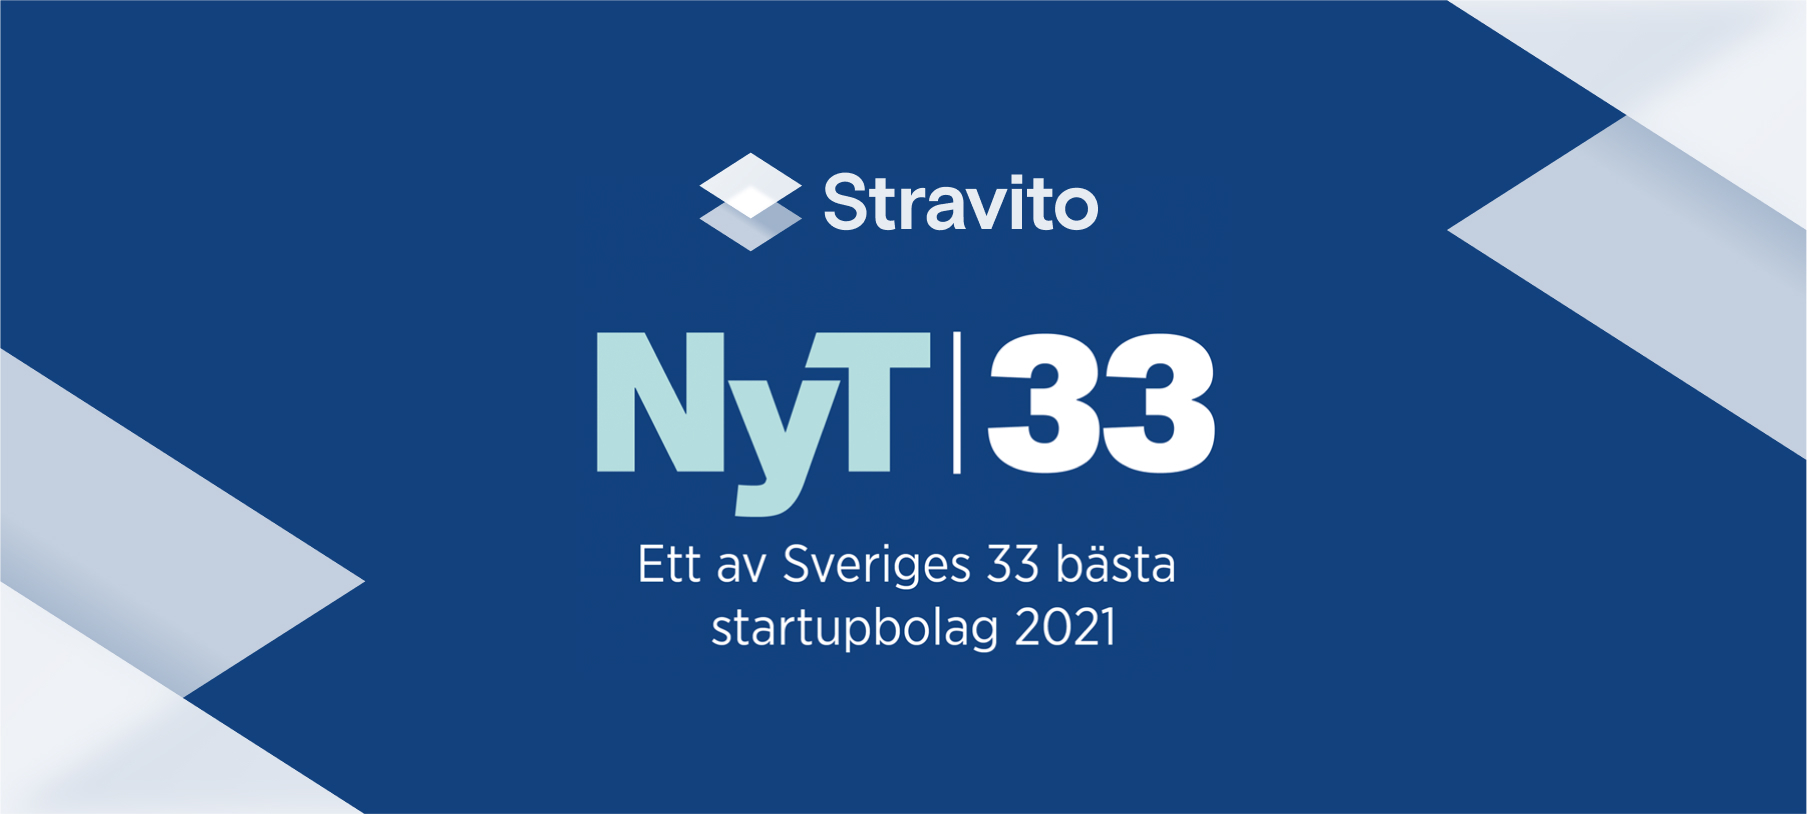 Stravito named a top startup in 2021 by 33-listan